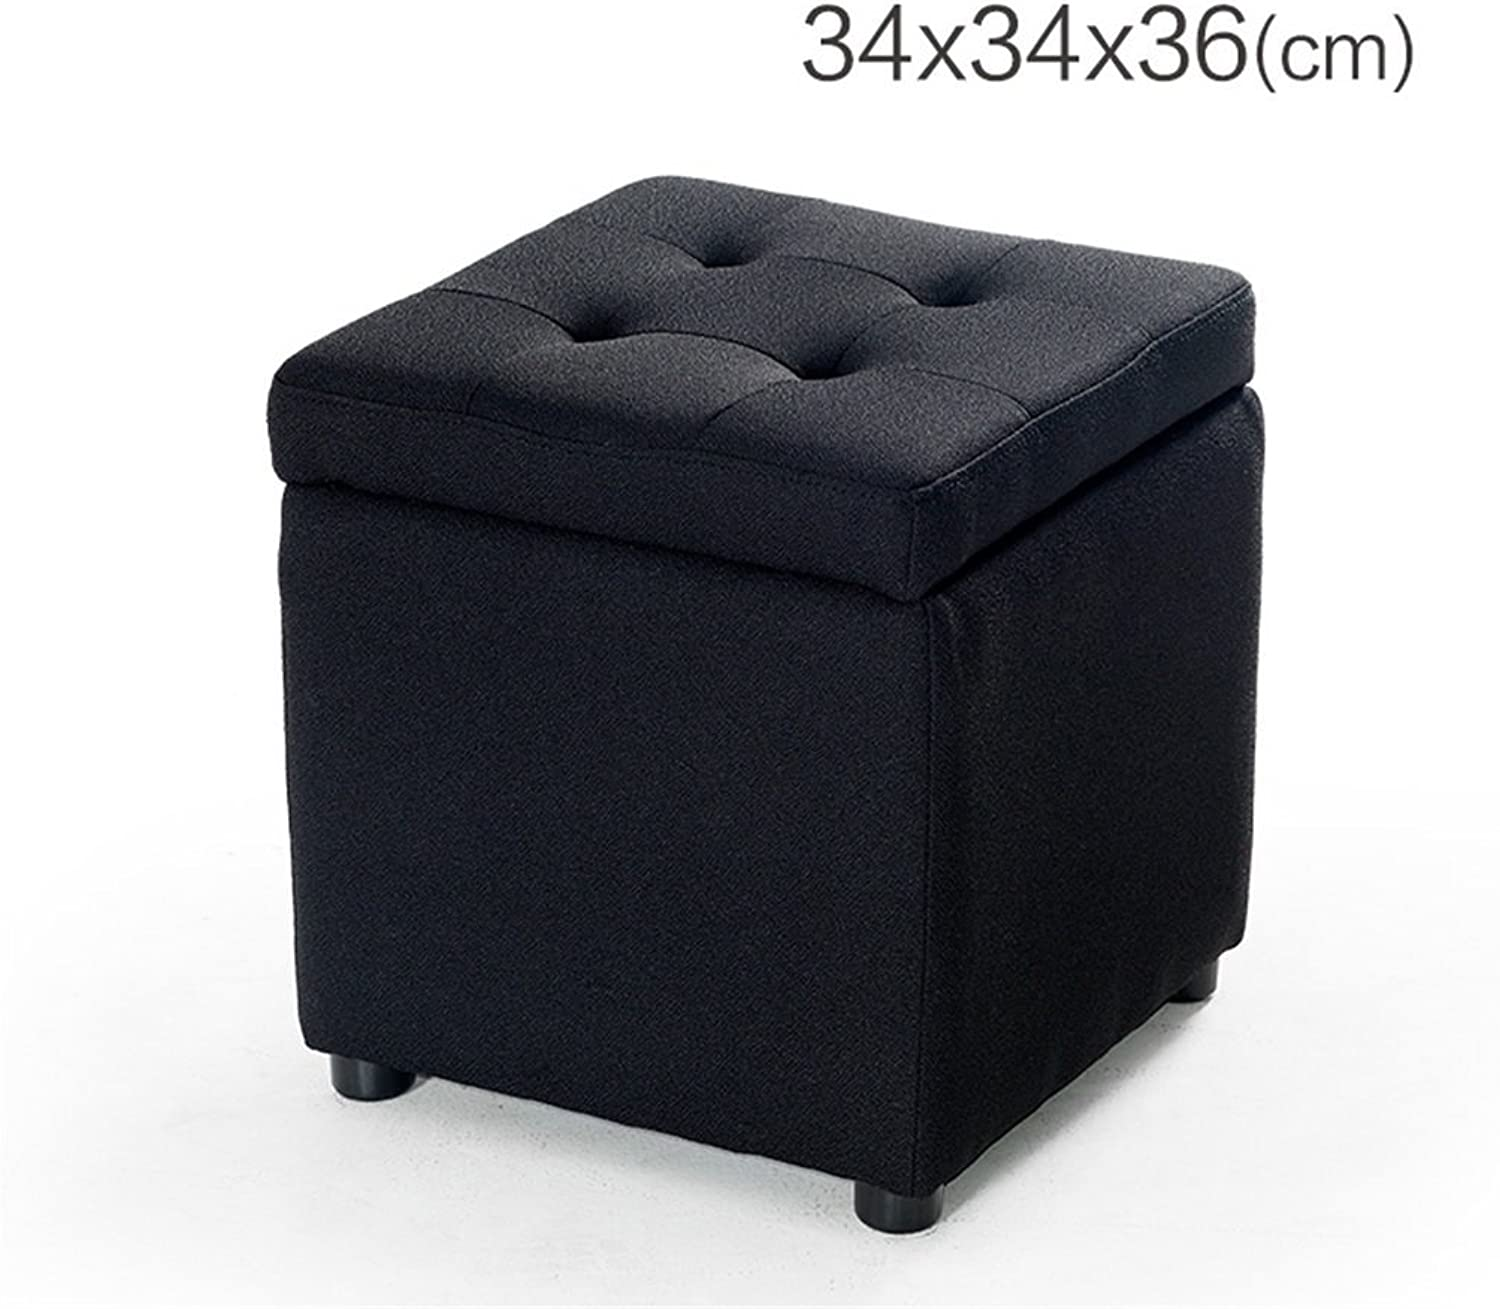 AIDELAI Bar Stool Chair- Leather Change shoes Stool European Style Sofa Stool Small Stool Bed Stool Living Room Round Stool Footstool Wearing a shoes Stool Bench Saddle Seat (color   B)